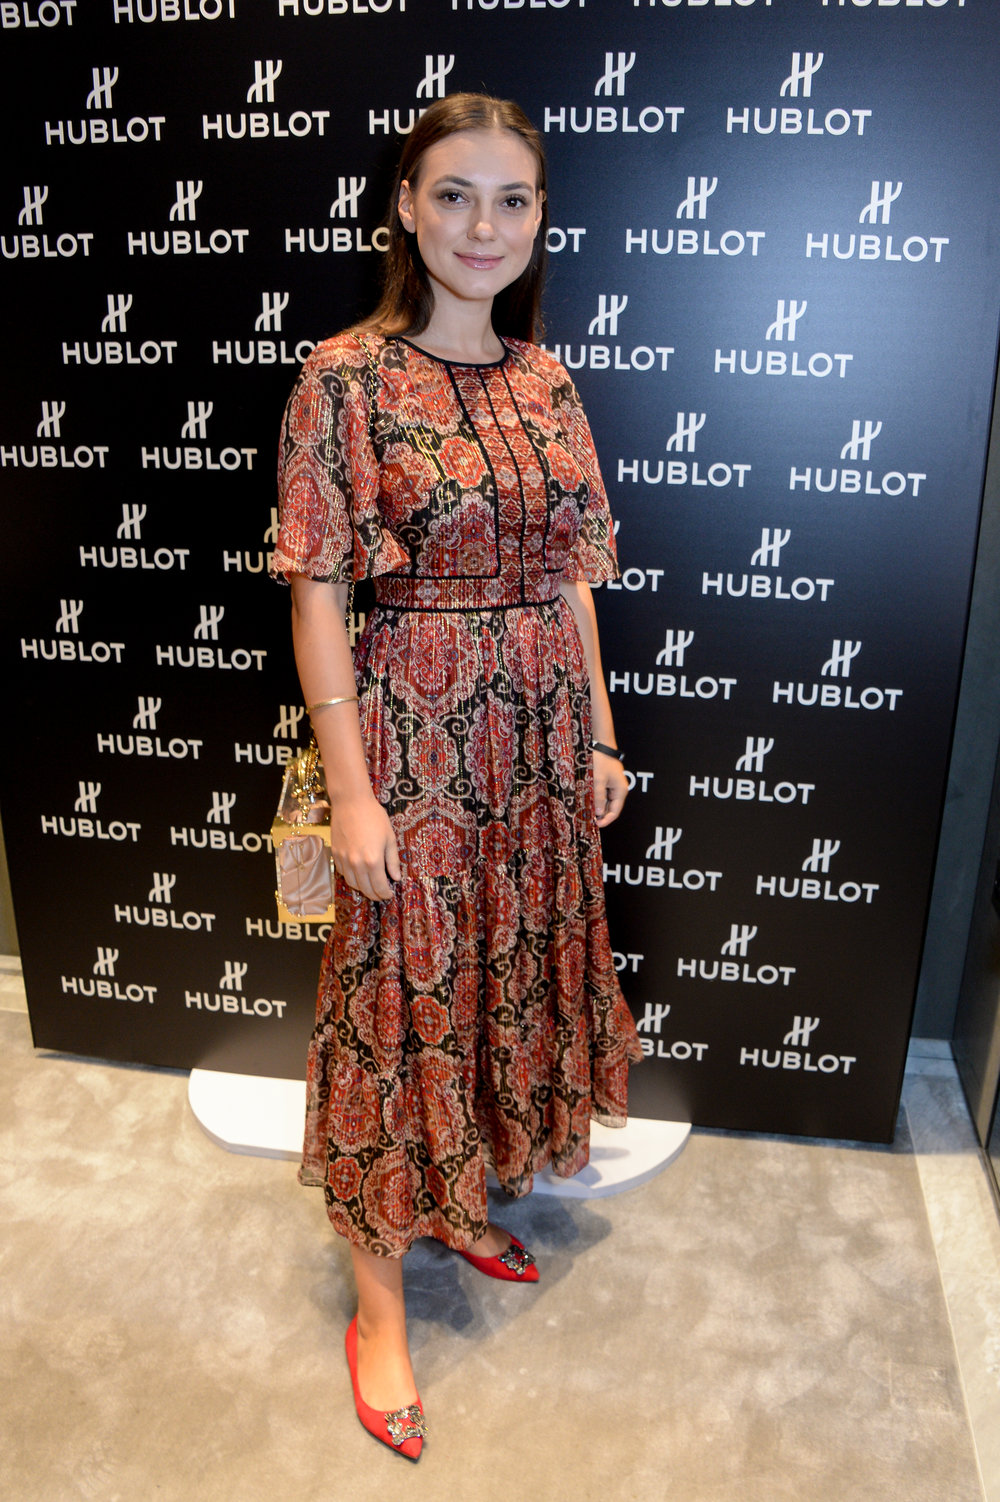 DMB-Hublot_London_Launch_Wide002.JPG